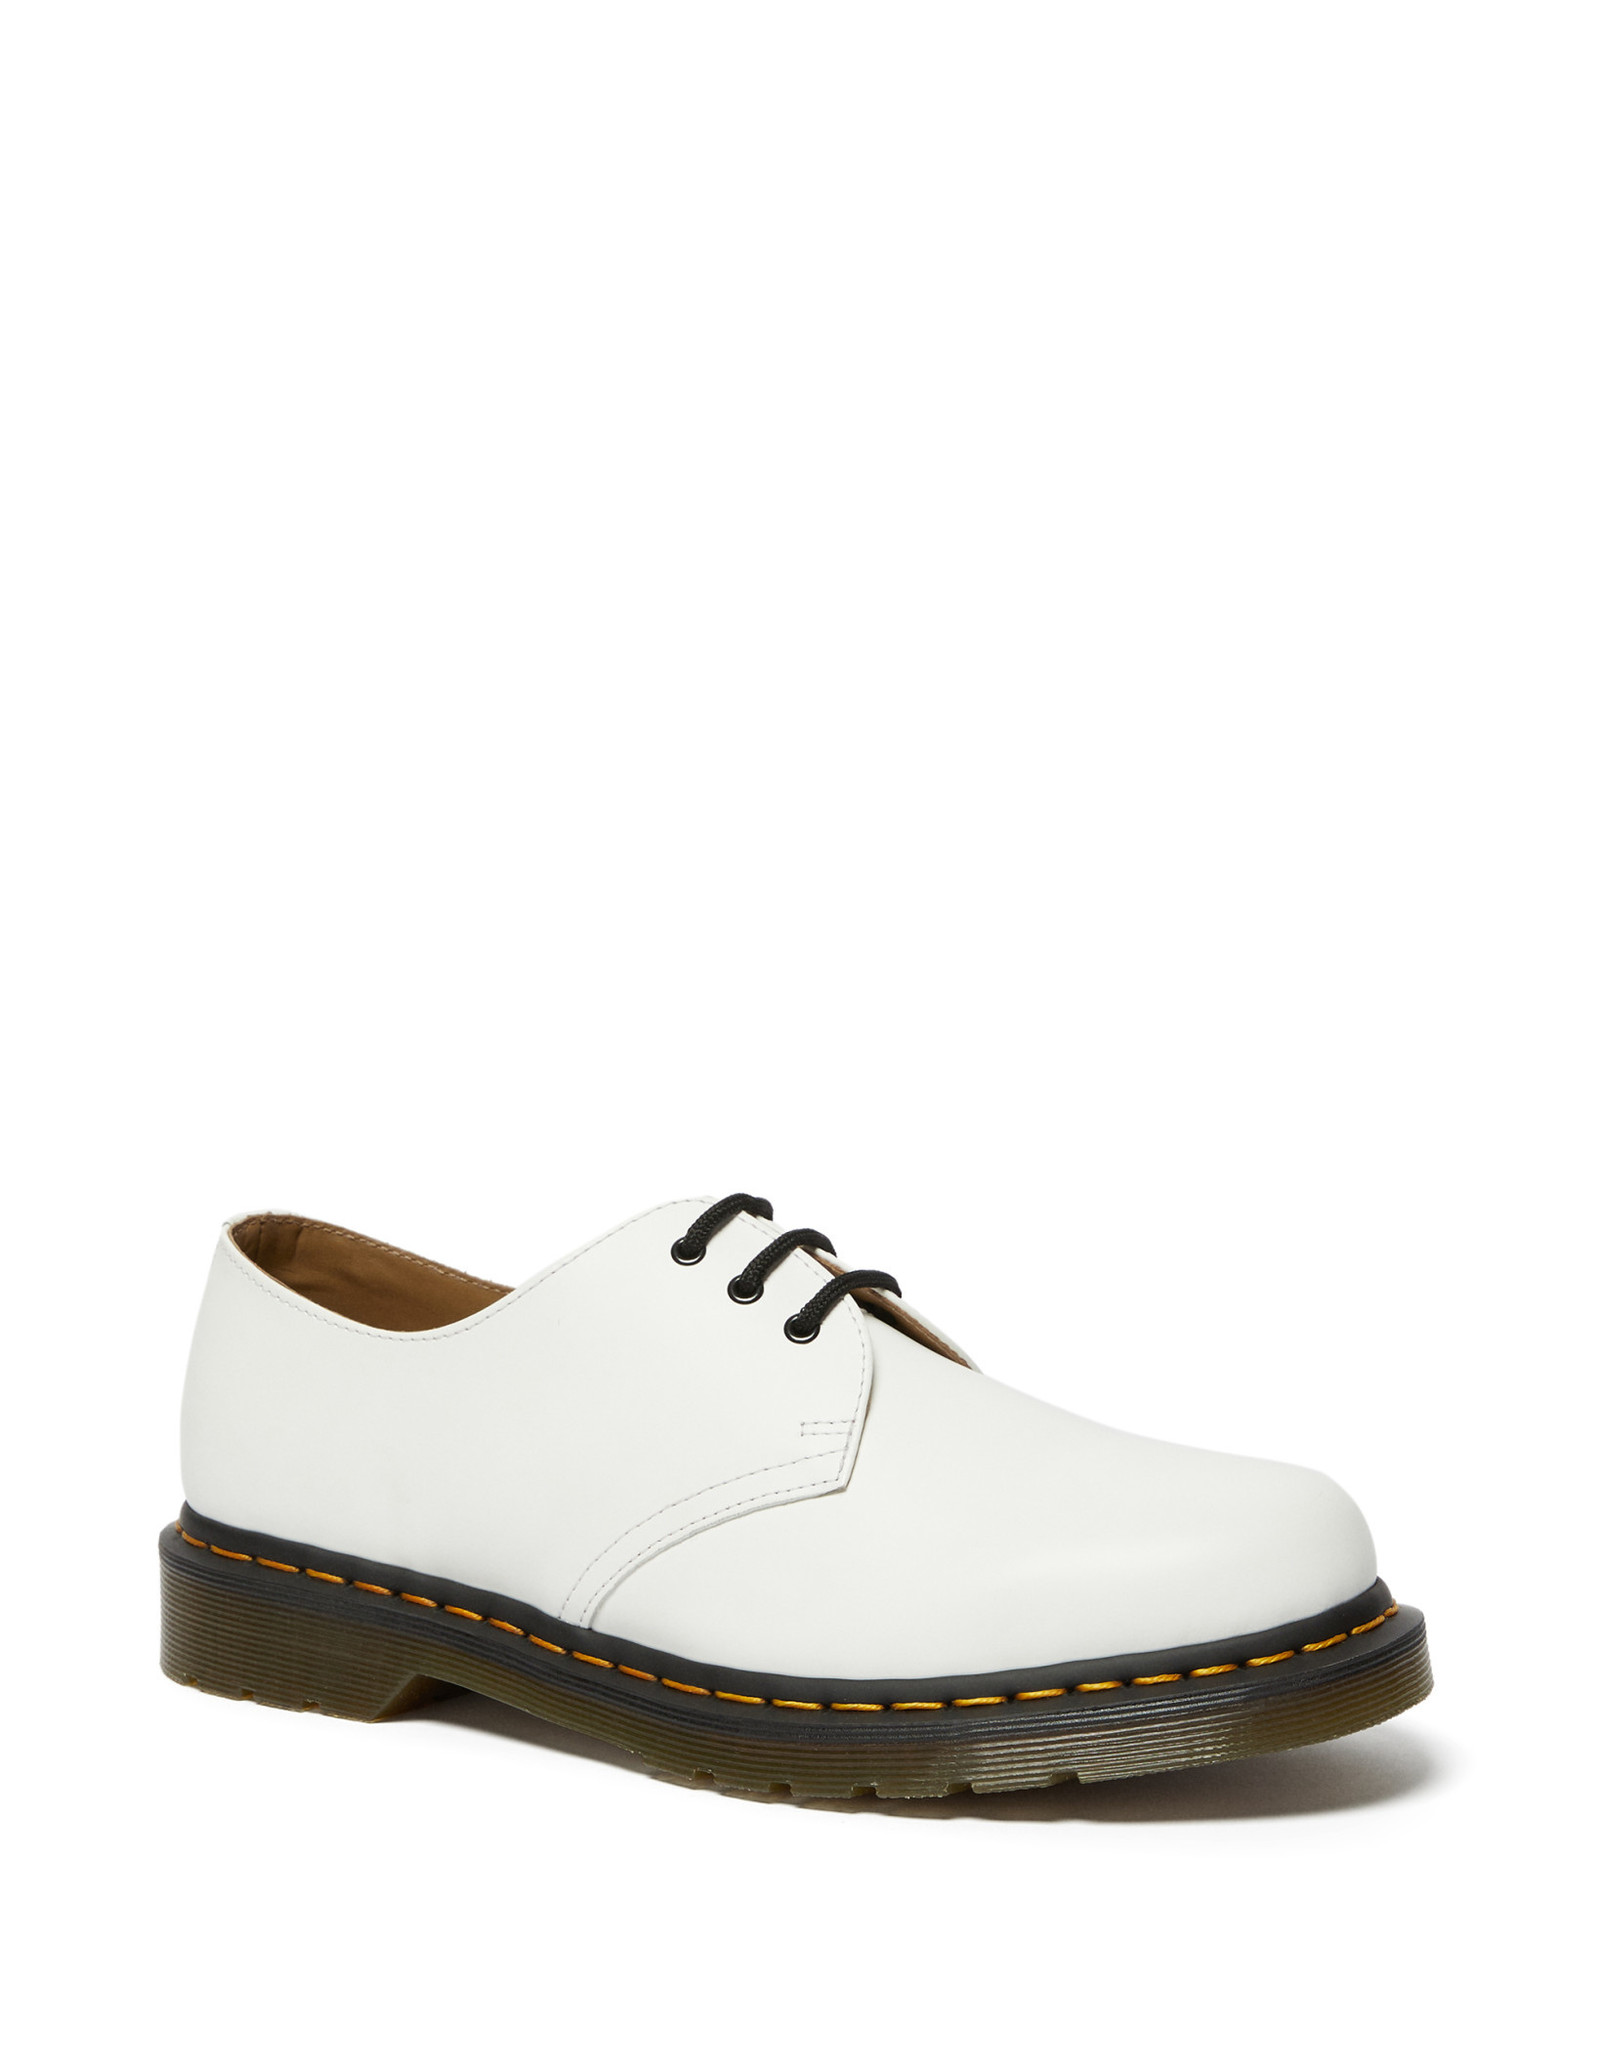 DR. MARTENS 1461 WHITE SMOOTH 301W-R26226100